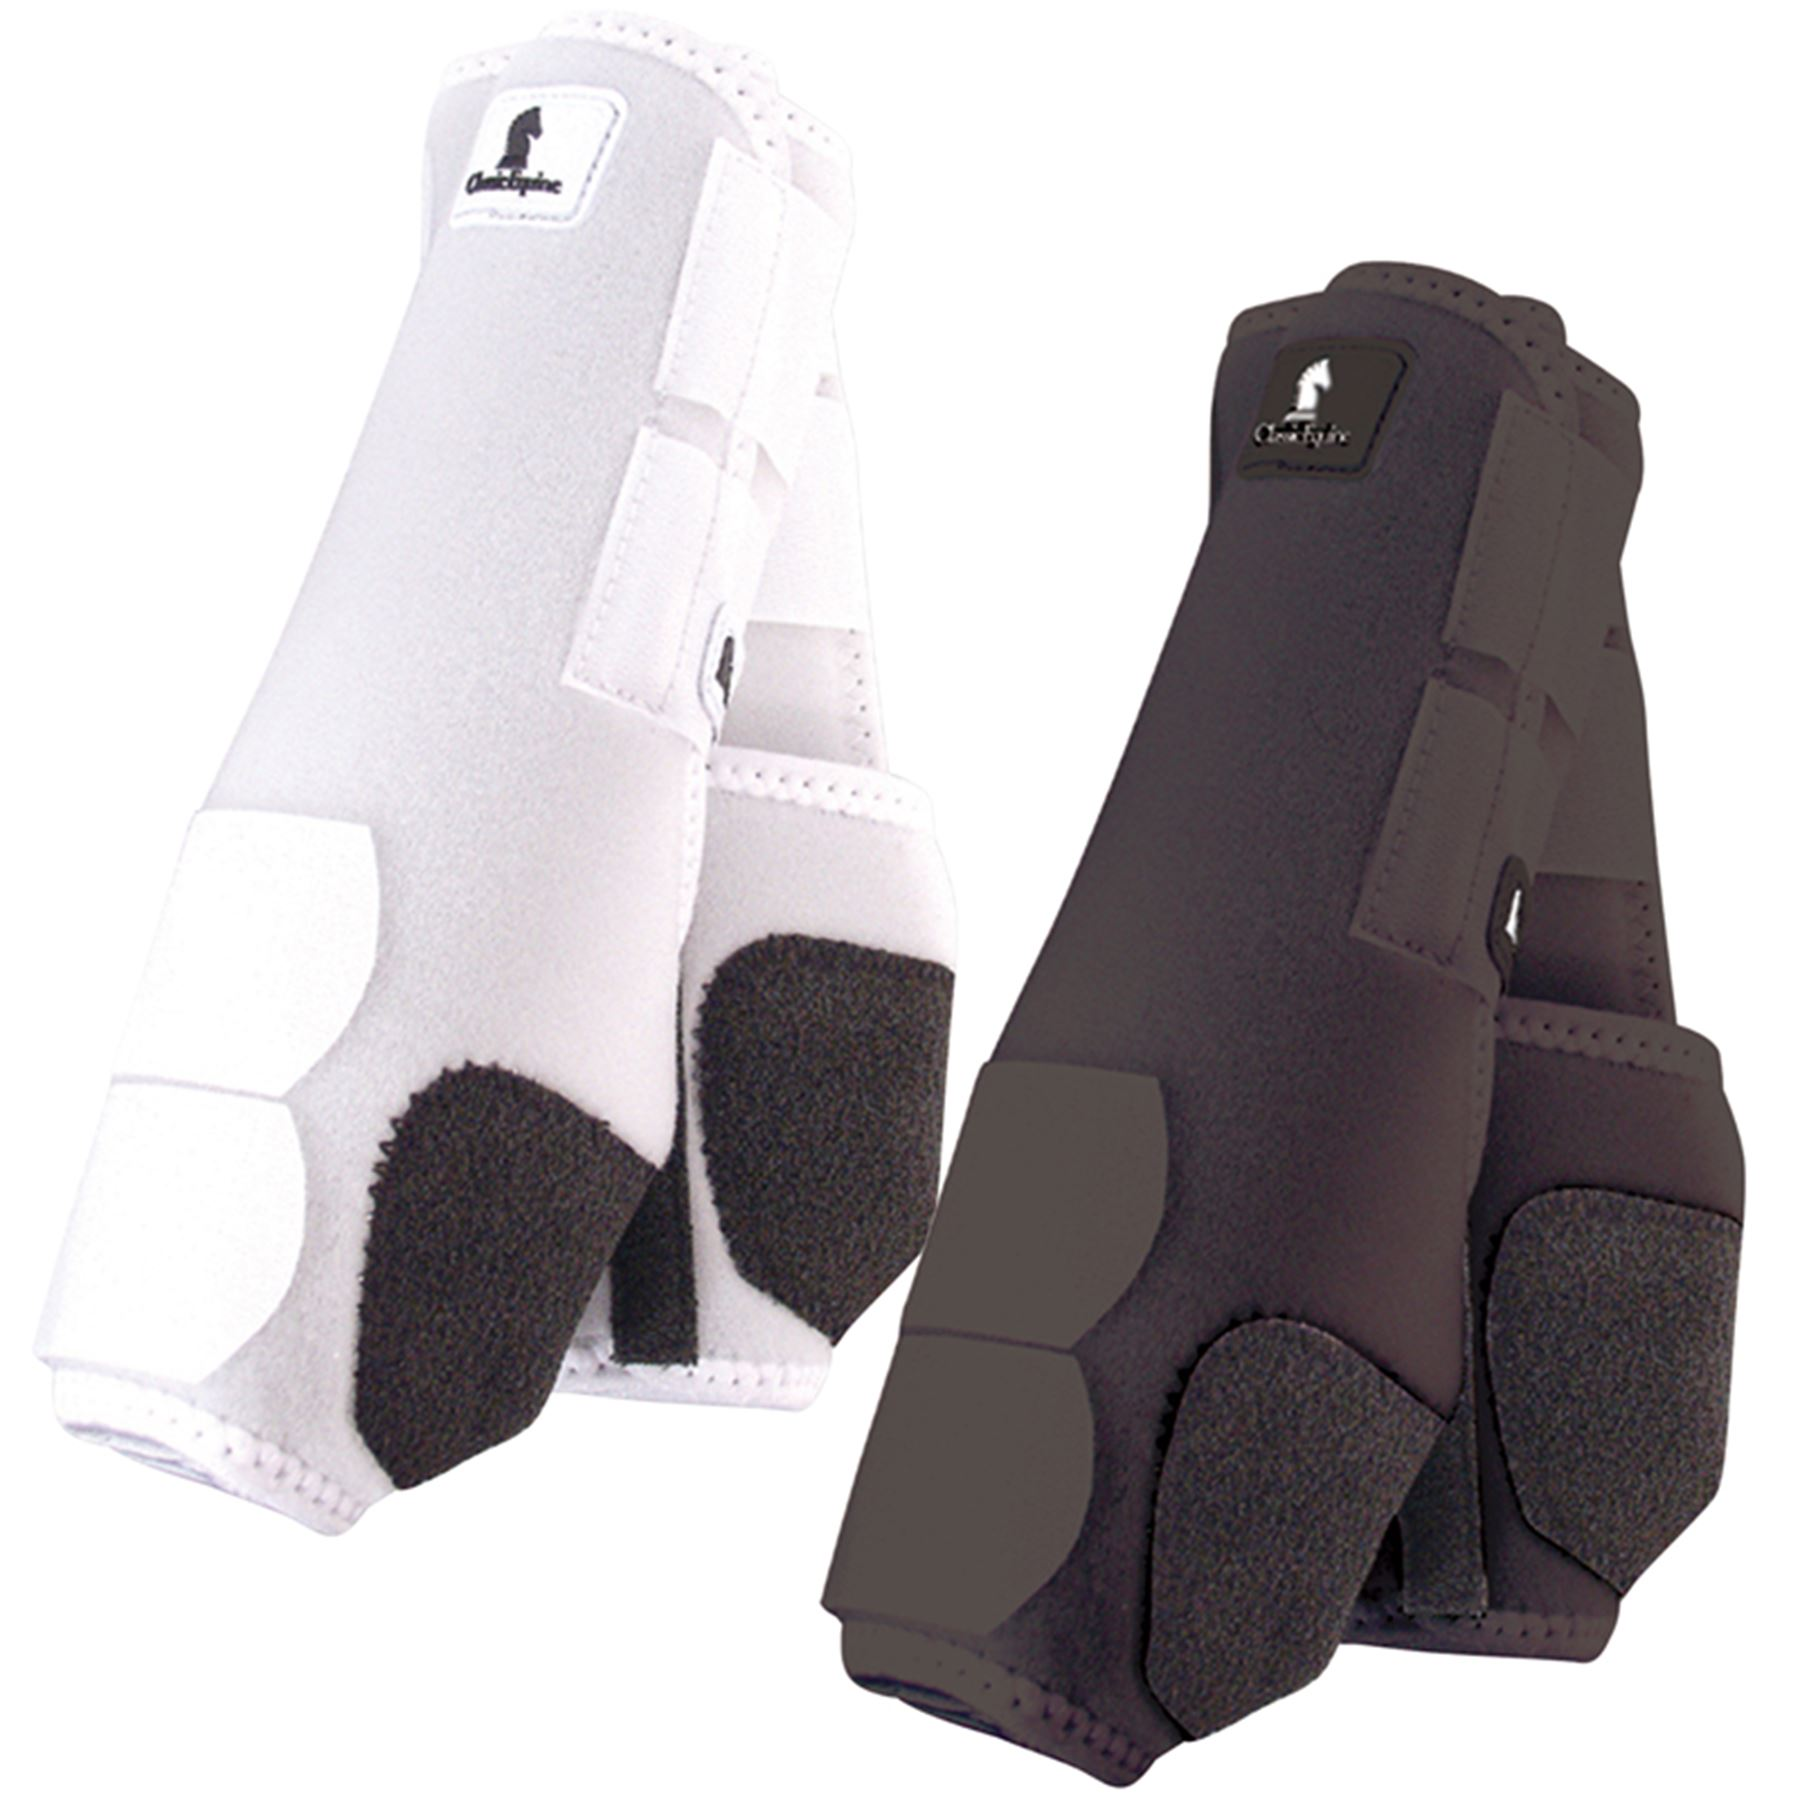 Classic Equine Legacy System Support Boots - Front